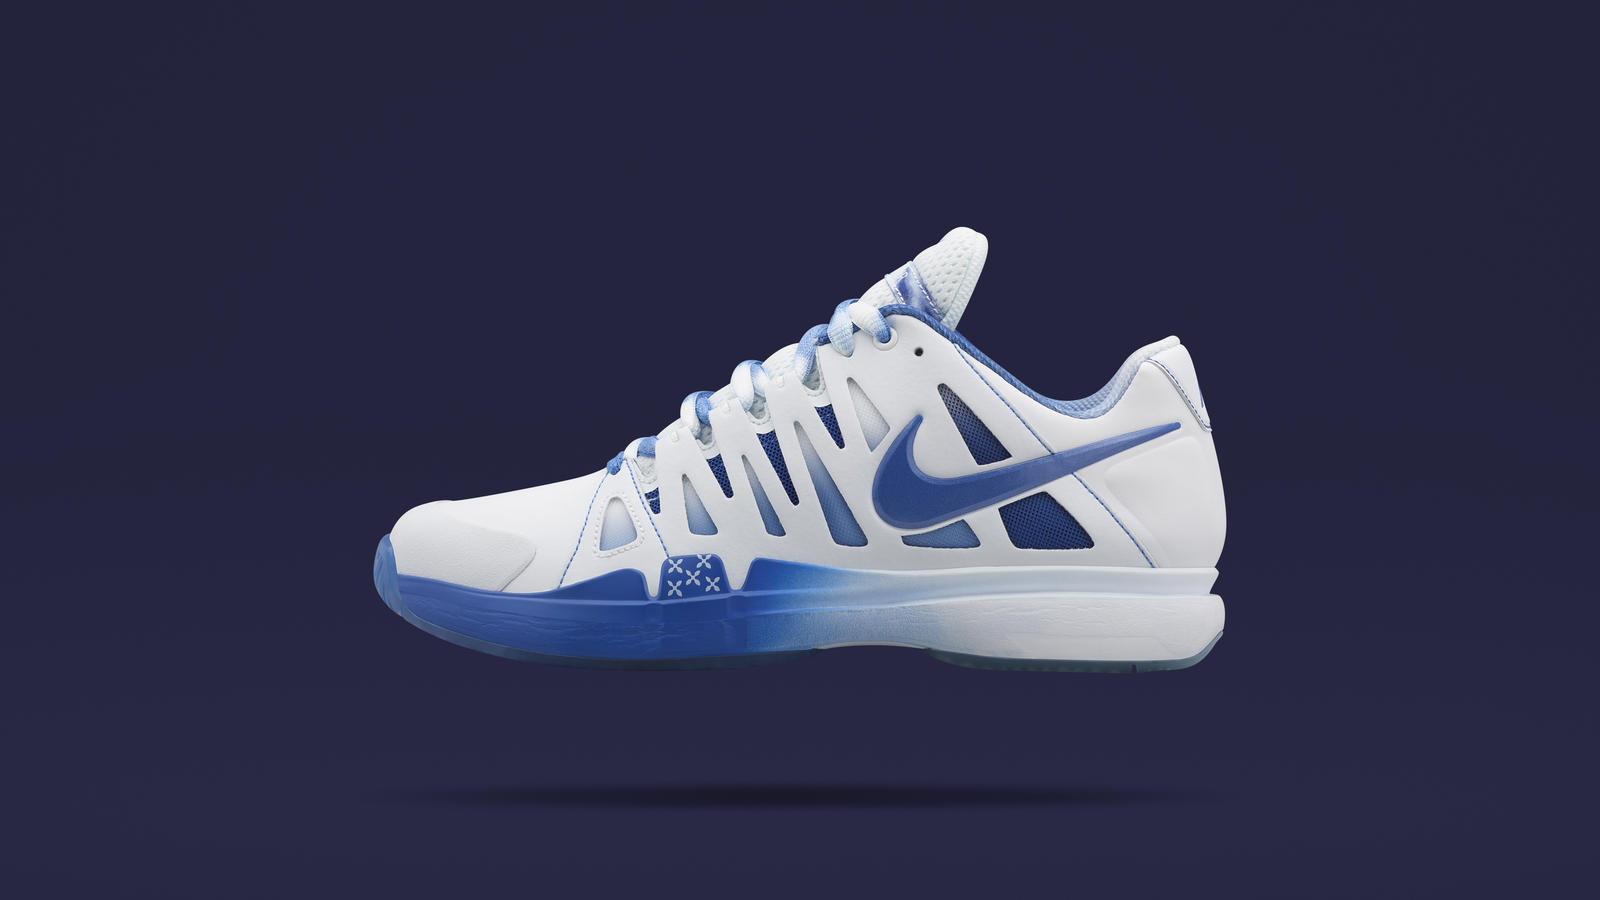 NikeCourt Zoom Vapor 9 Tour x colette  To equip Sharapova for another run at history, NikeLab and colette have teamed up to reinterpret the NikeCourt Zoom Vapor 9 Tour. Detailed in colette's signature blue colours and iconic dots, the women's performance tennis shoe features a number of subtle design nods to Sharapova.